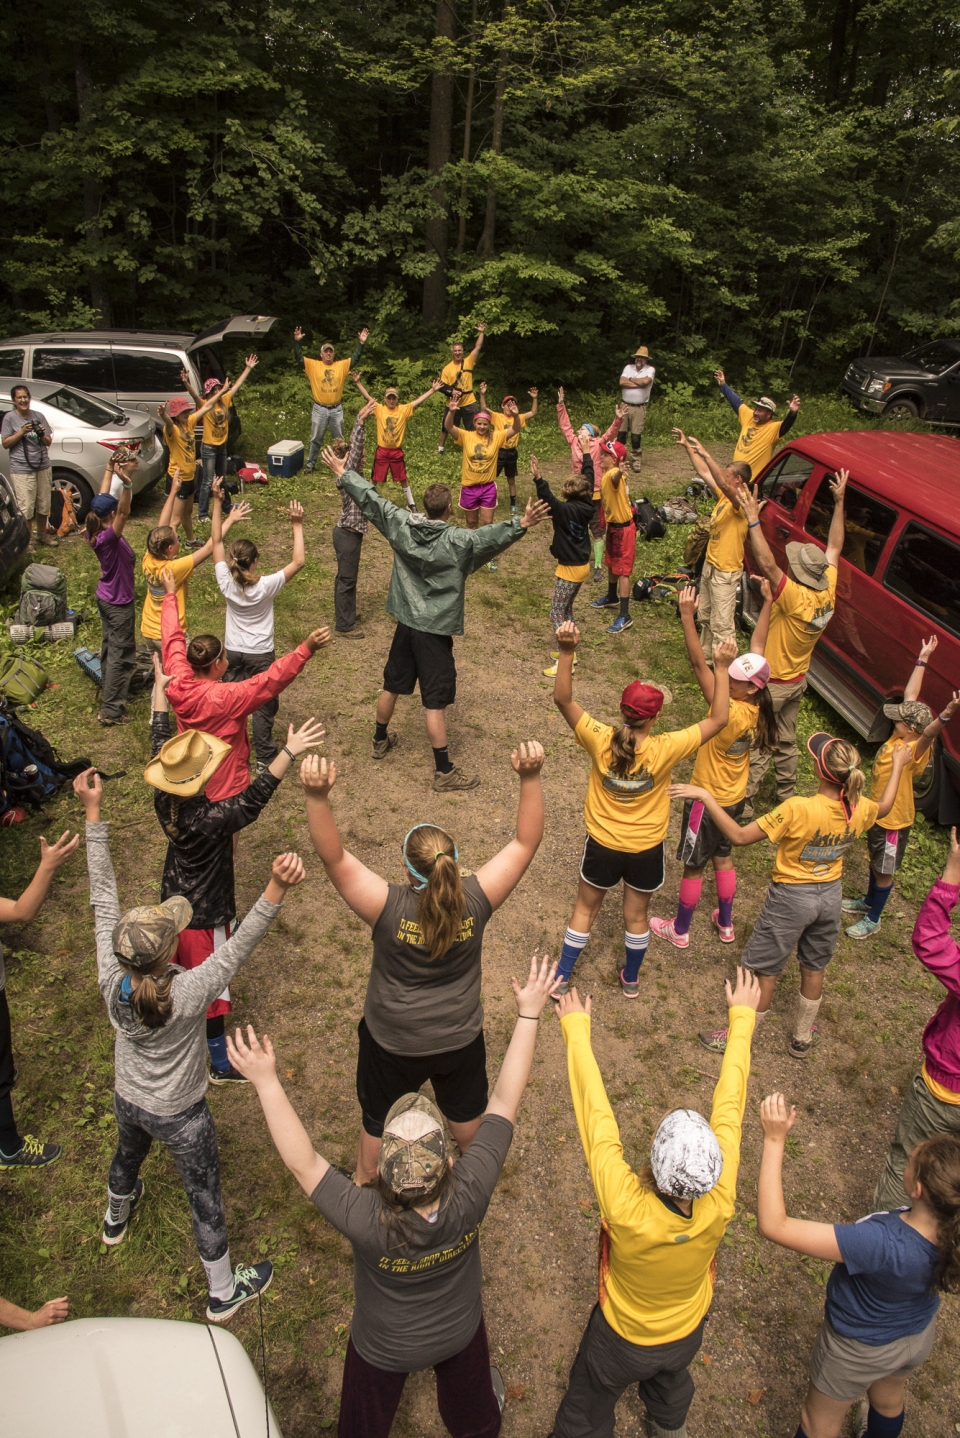 Group of youth in the wilderness with both hands raised